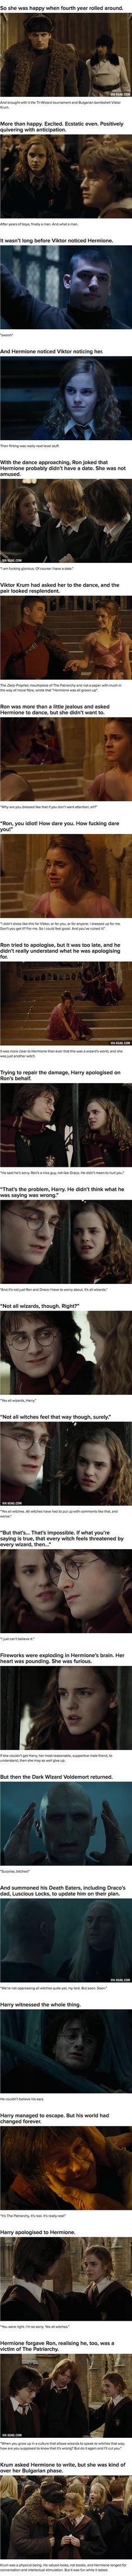 """If Hermione Were The Main Character In """"Harry Potter"""" (Part 3 Of 5)"""